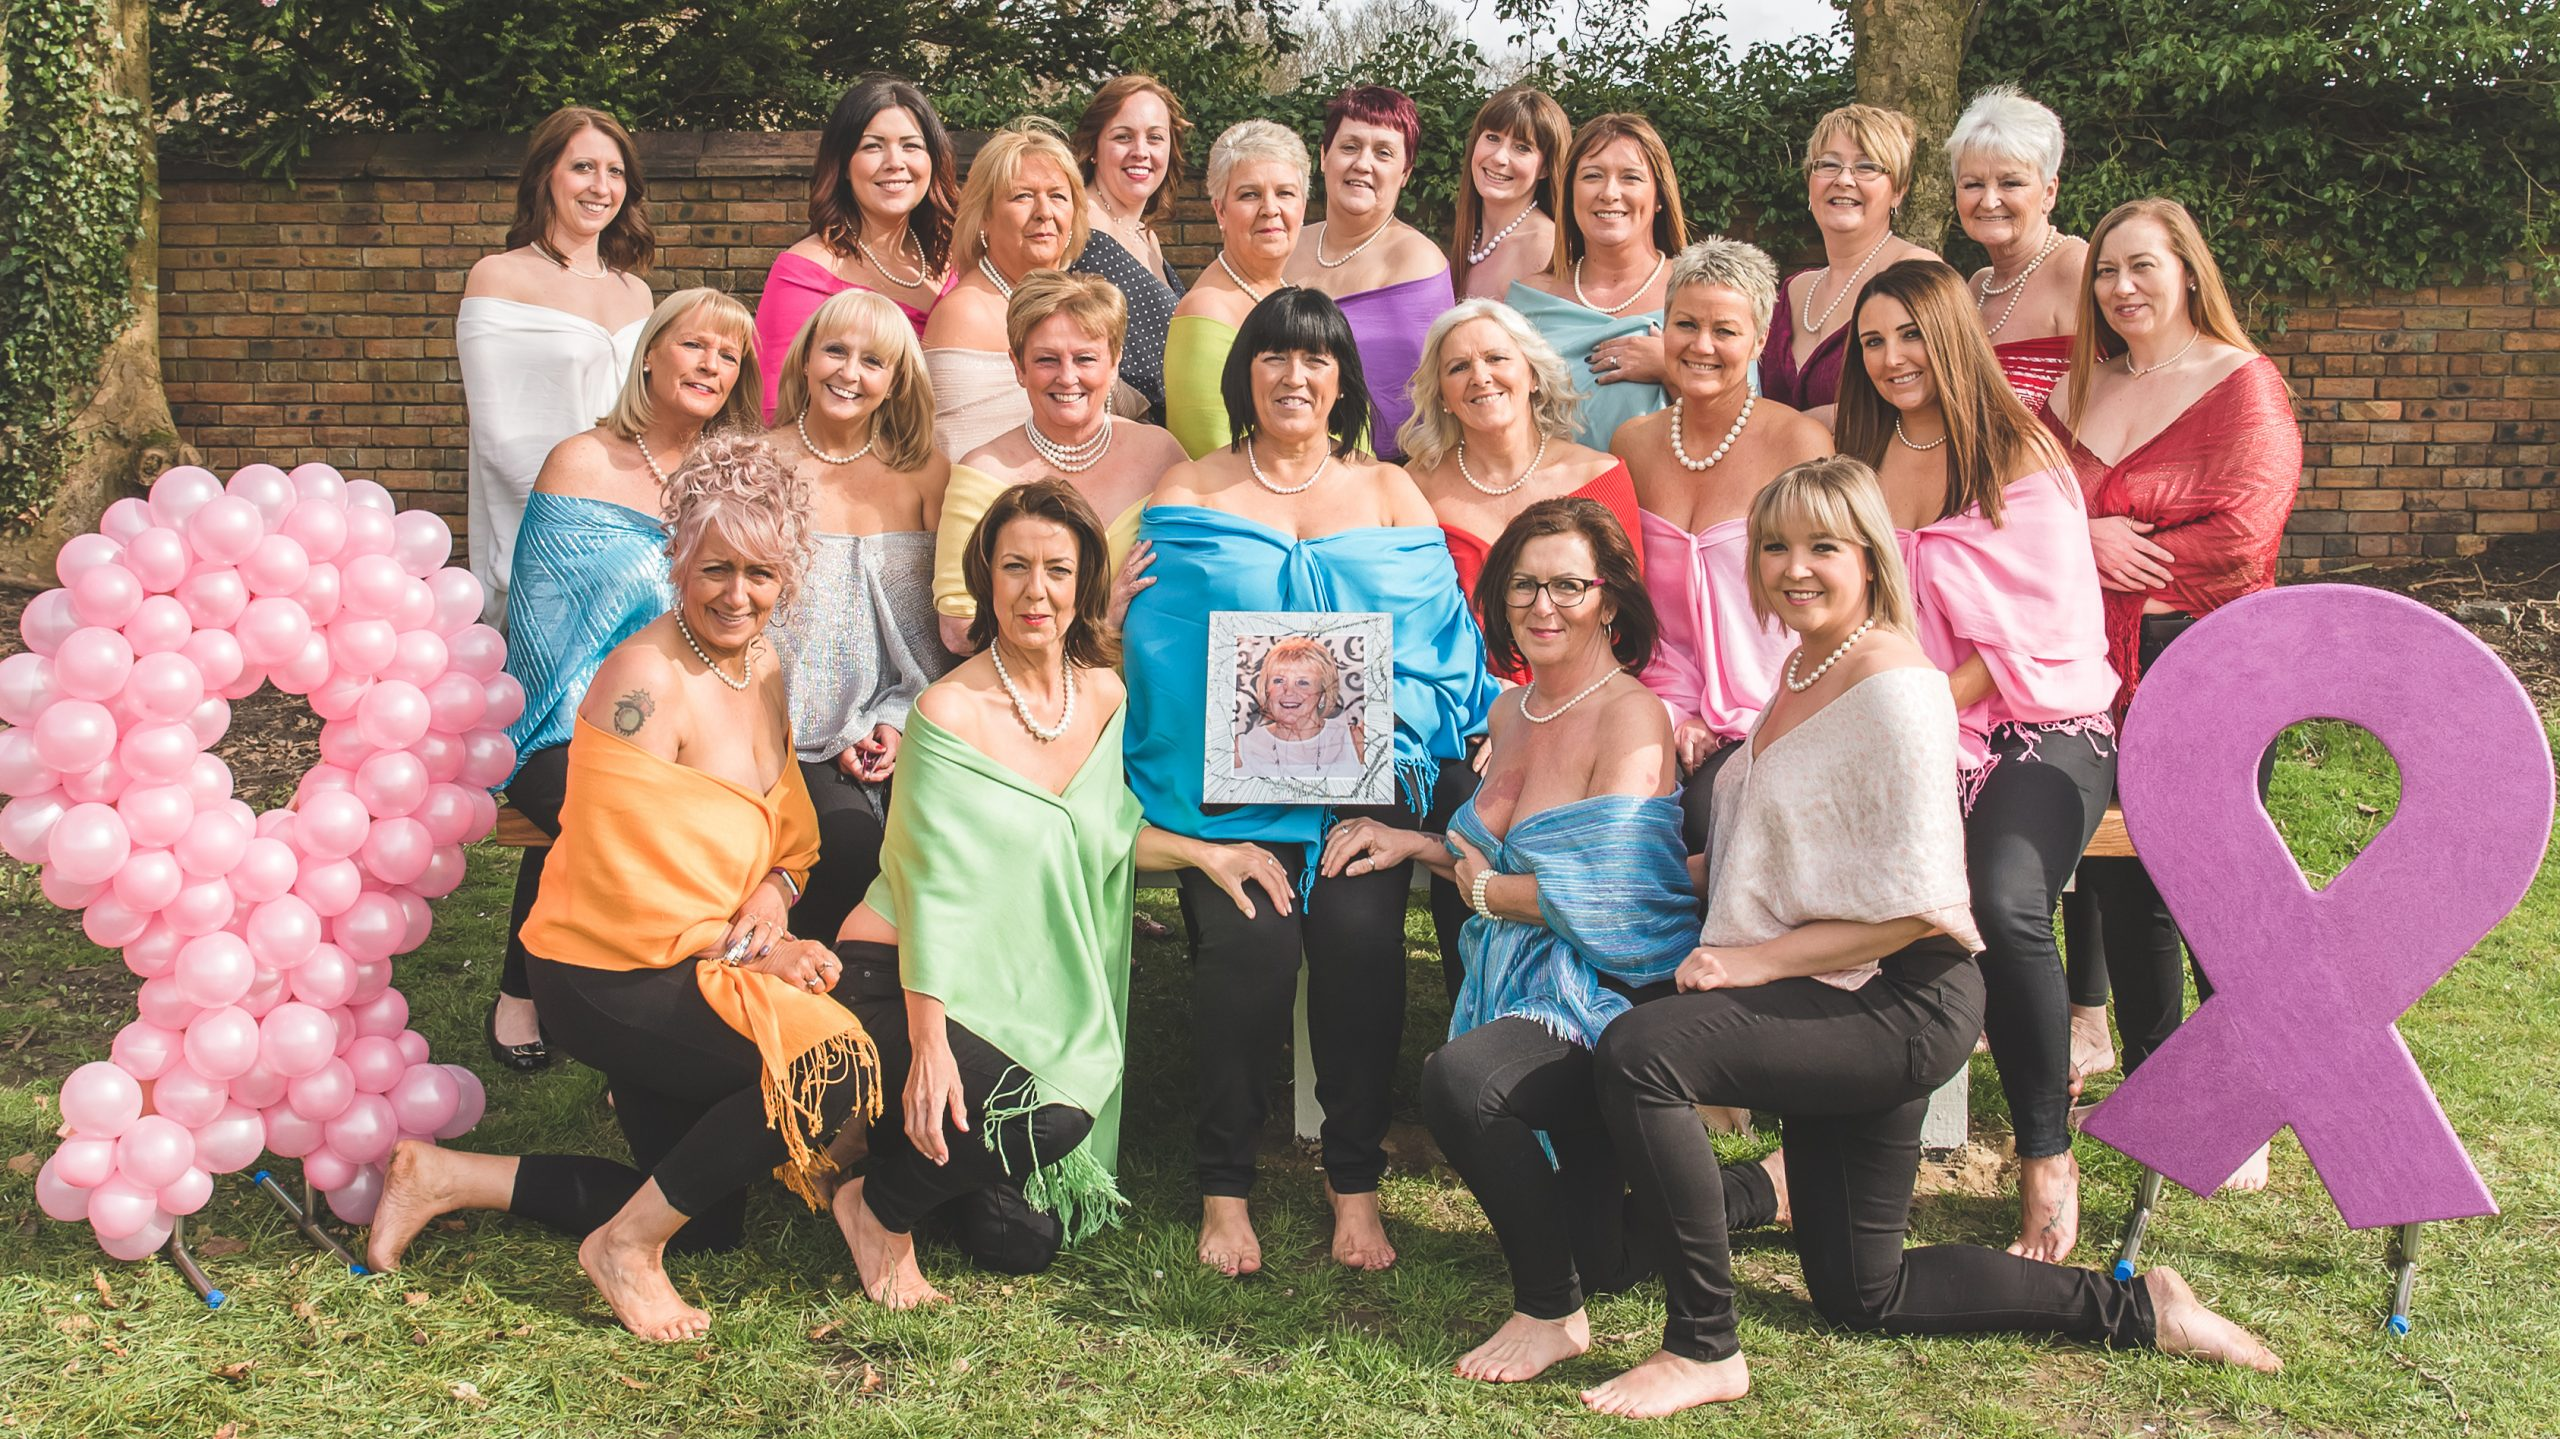 , WWL Calendar Girl bares all in memory of sister, Skem News - The Top Source for Skelmersdale News, Skem News - The Top Source for Skelmersdale News